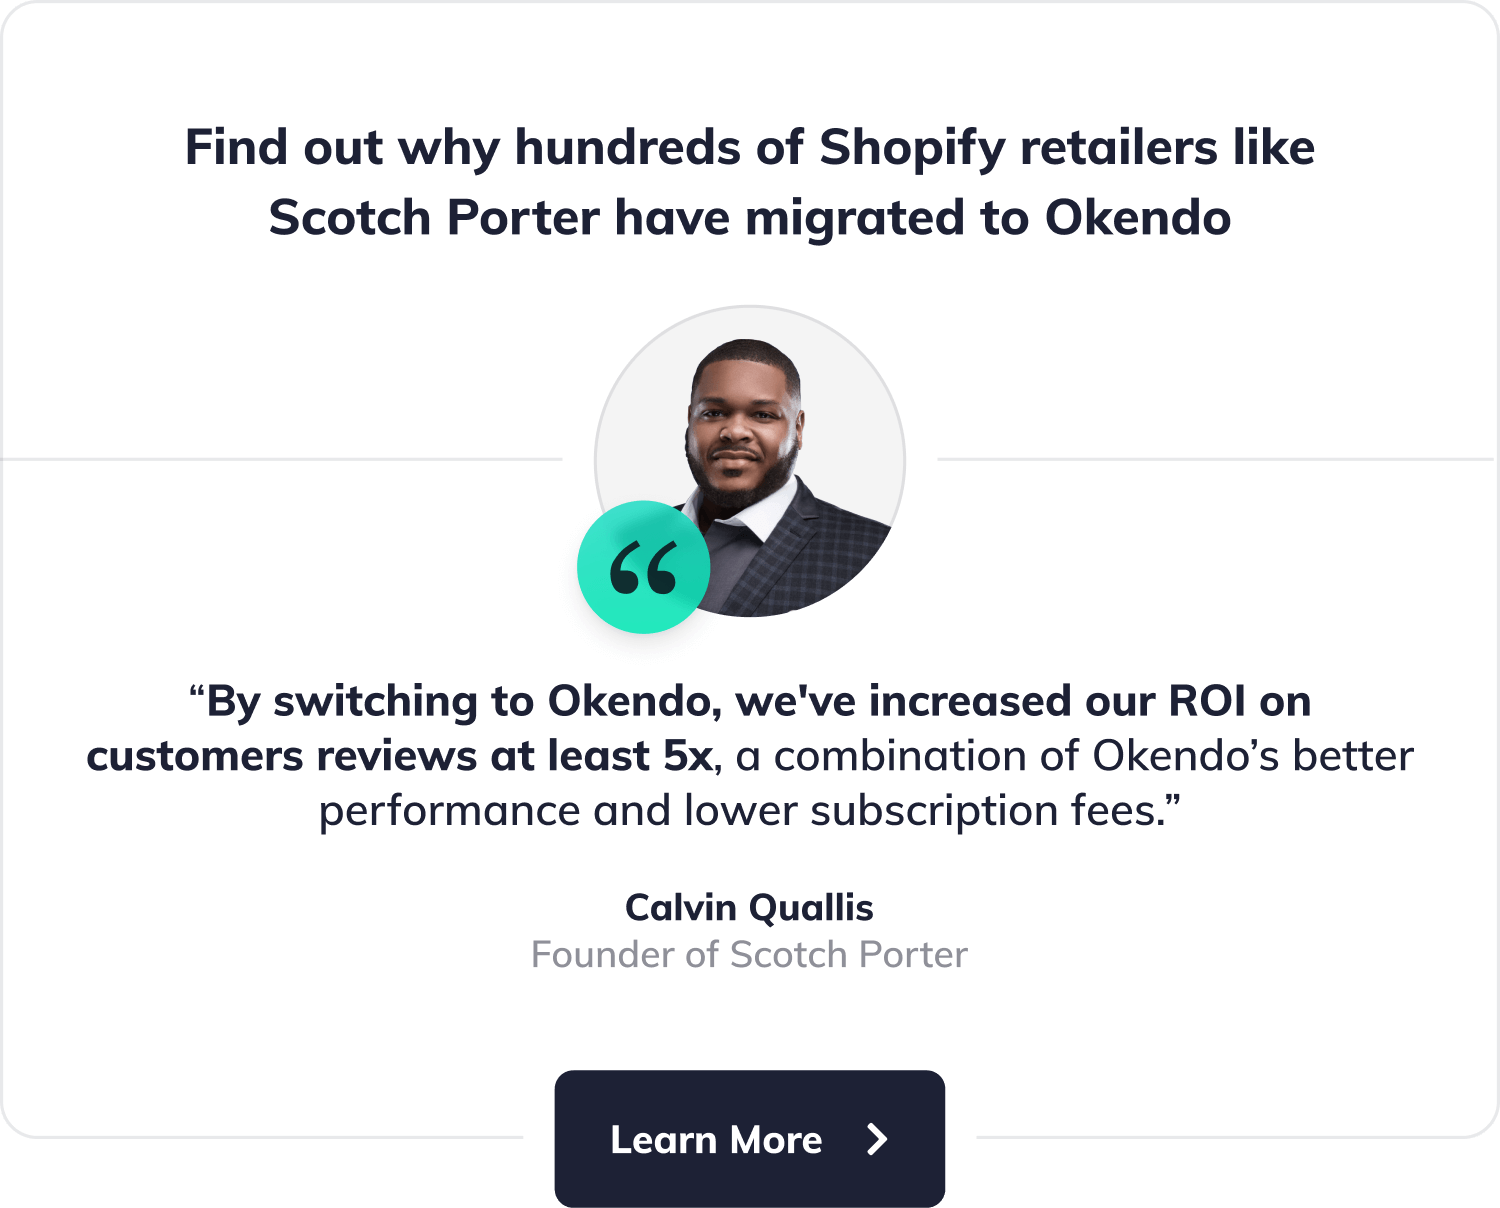 Find out why hundreds of high-performance Shopify retailers like Scotch Porter have migrated to Okendo.